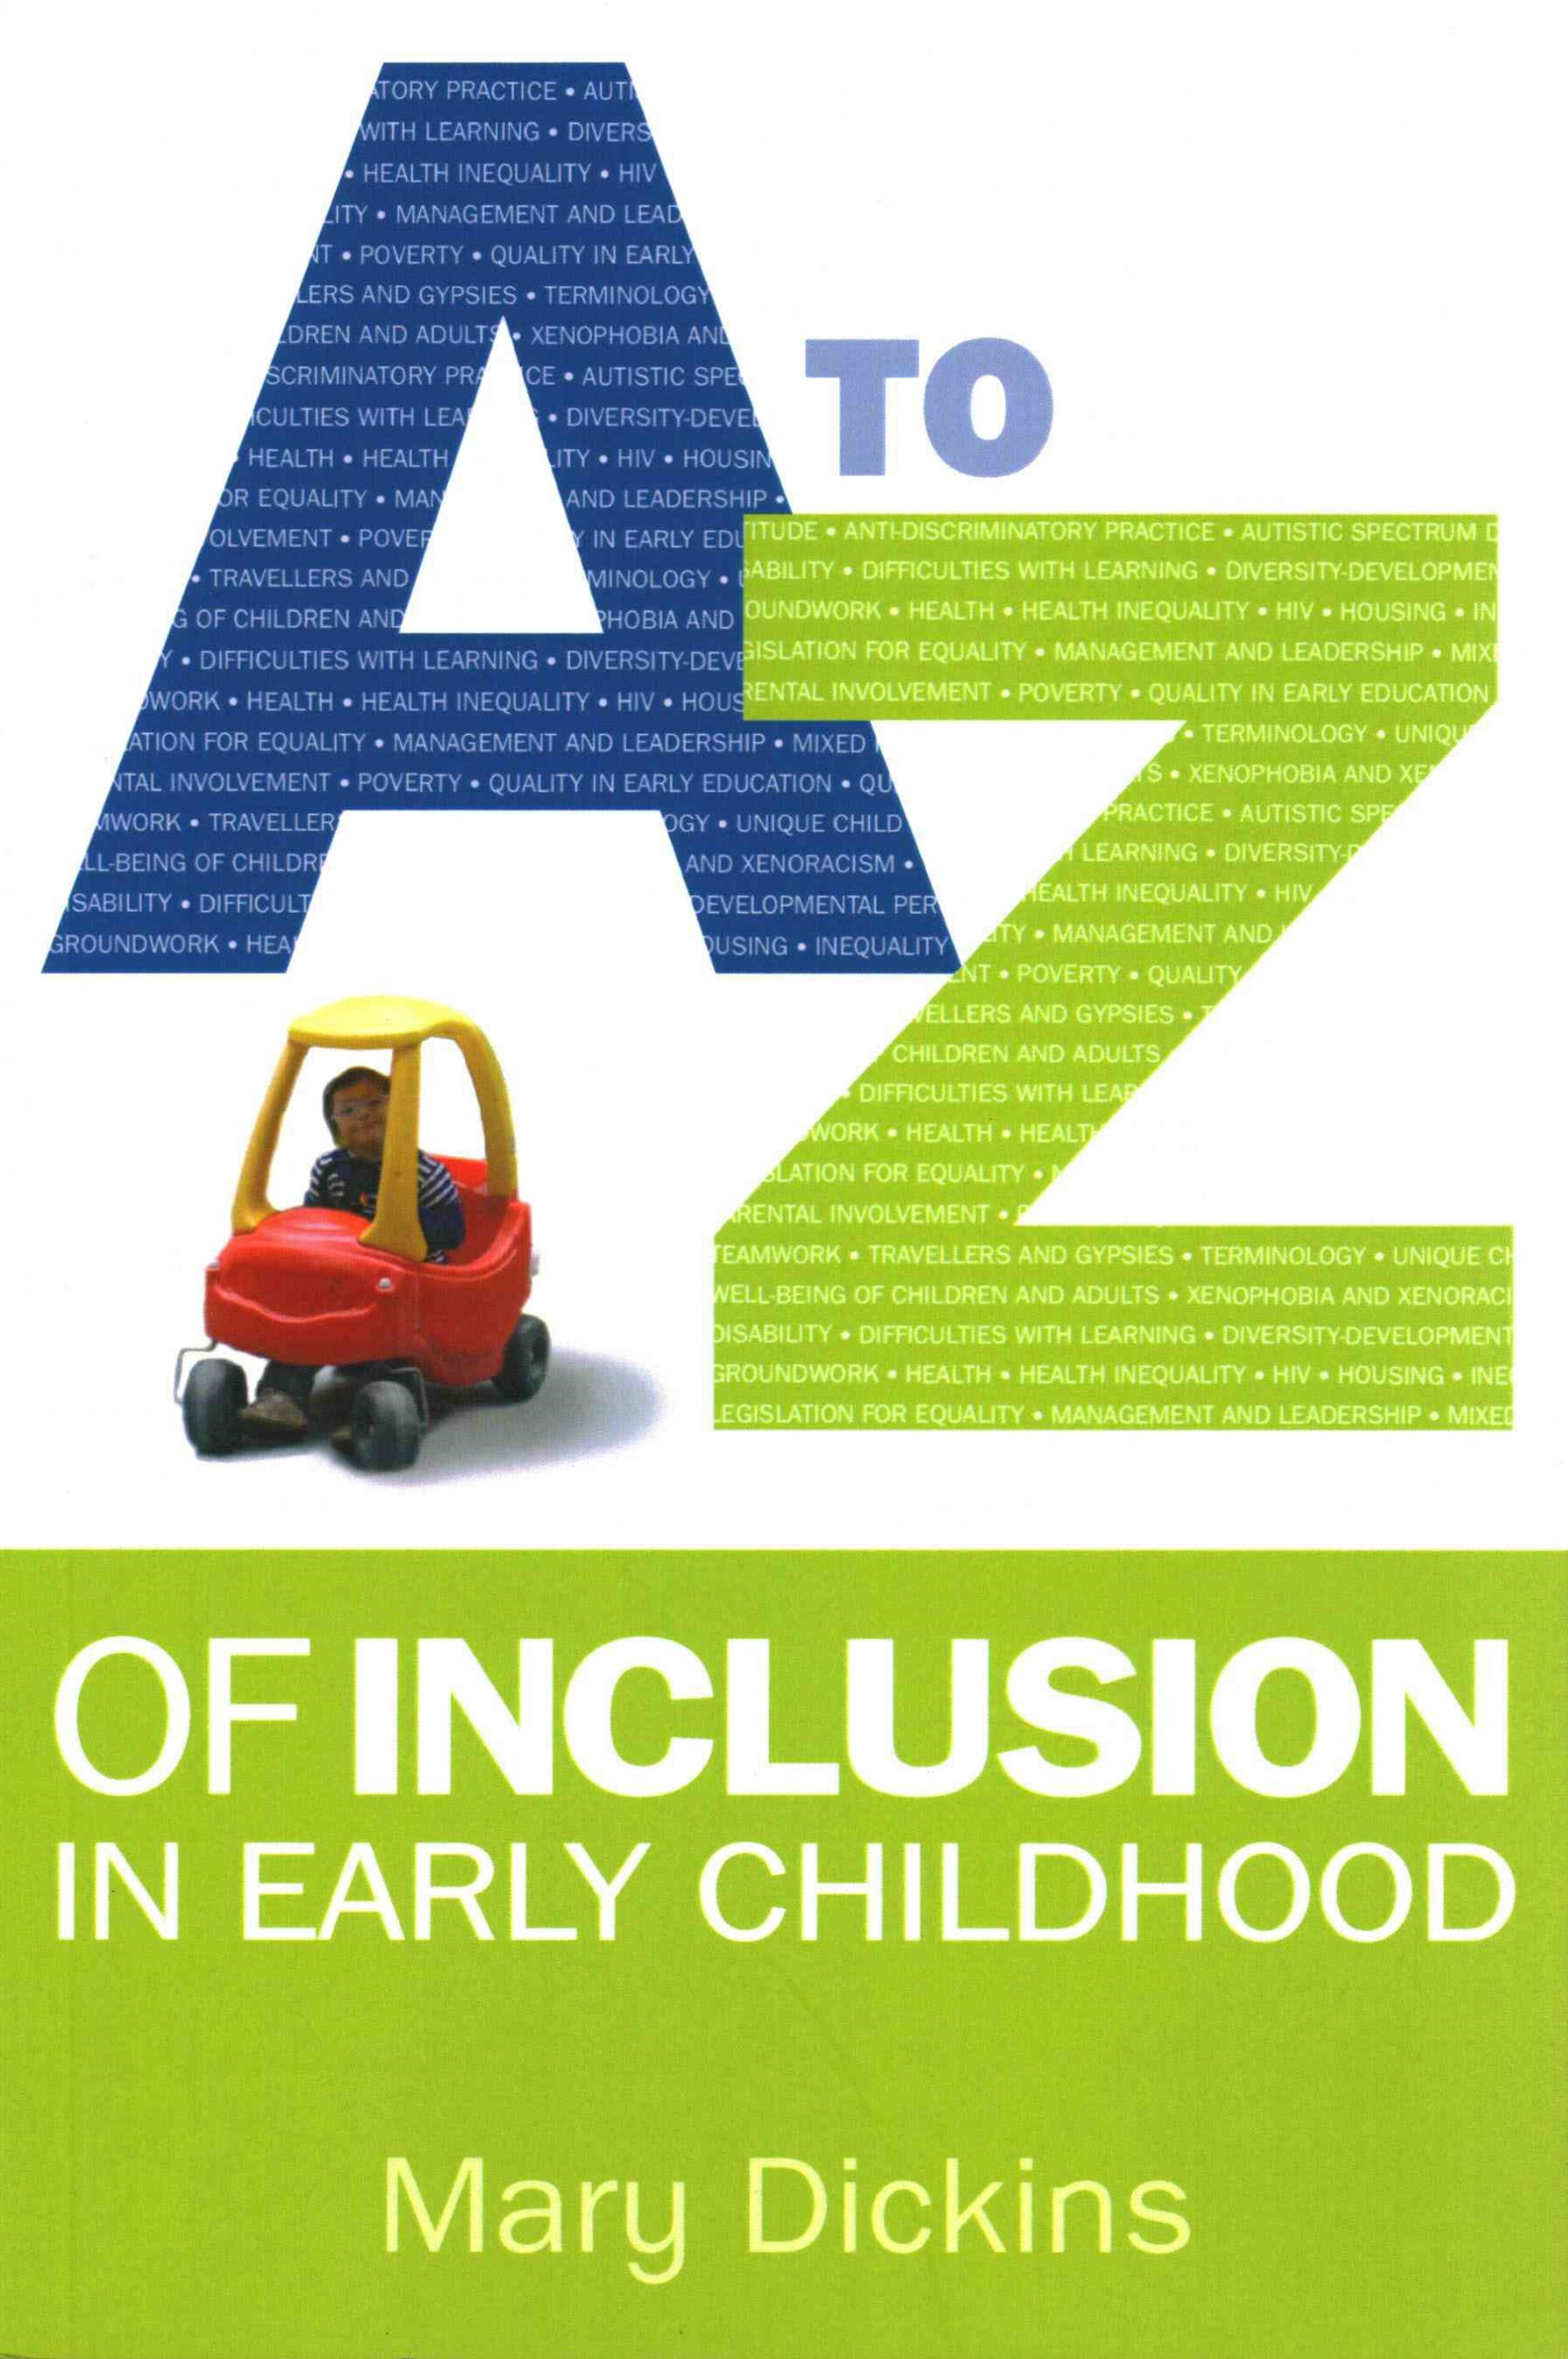 A-Z of Inclusion in Early Childhood